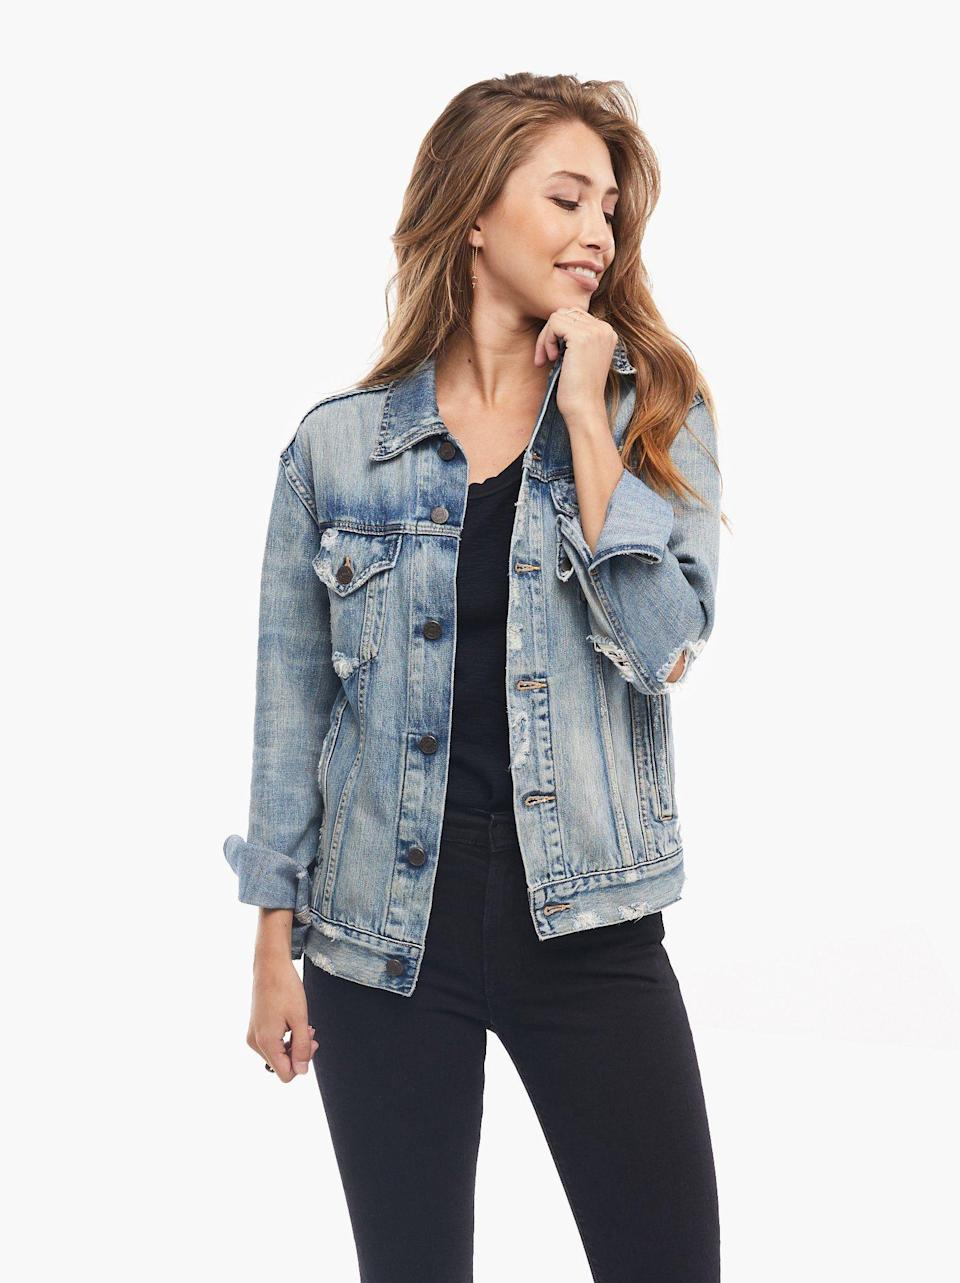 """<p><strong>Able</strong></p><p>livefashionable.com</p><p><strong>$150.00</strong></p><p><a href=""""https://go.redirectingat.com?id=74968X1596630&url=https%3A%2F%2Fwww.livefashionable.com%2Fcollections%2Fjackets%2Fproducts%2Fmerly-jacket&sref=https%3A%2F%2Fwww.prevention.com%2Fbeauty%2Fstyle%2Fg37148346%2Fbest-jean-jackets-for-women%2F"""" rel=""""nofollow noopener"""" target=""""_blank"""" data-ylk=""""slk:Shop Now"""" class=""""link rapid-noclick-resp"""">Shop Now</a></p><p>""""My all-time favorite jean jacket is the Merly from Able,"""" says Baker. """"It's distressed, feels super soft, and has an overall relaxed fit, which is great."""" The jacket also <strong>comes in a faded wash, with ripped detailing, and has a slightly dropped arm</strong>, making it the perfect mix of vintage tomboy and feminine.</p>"""